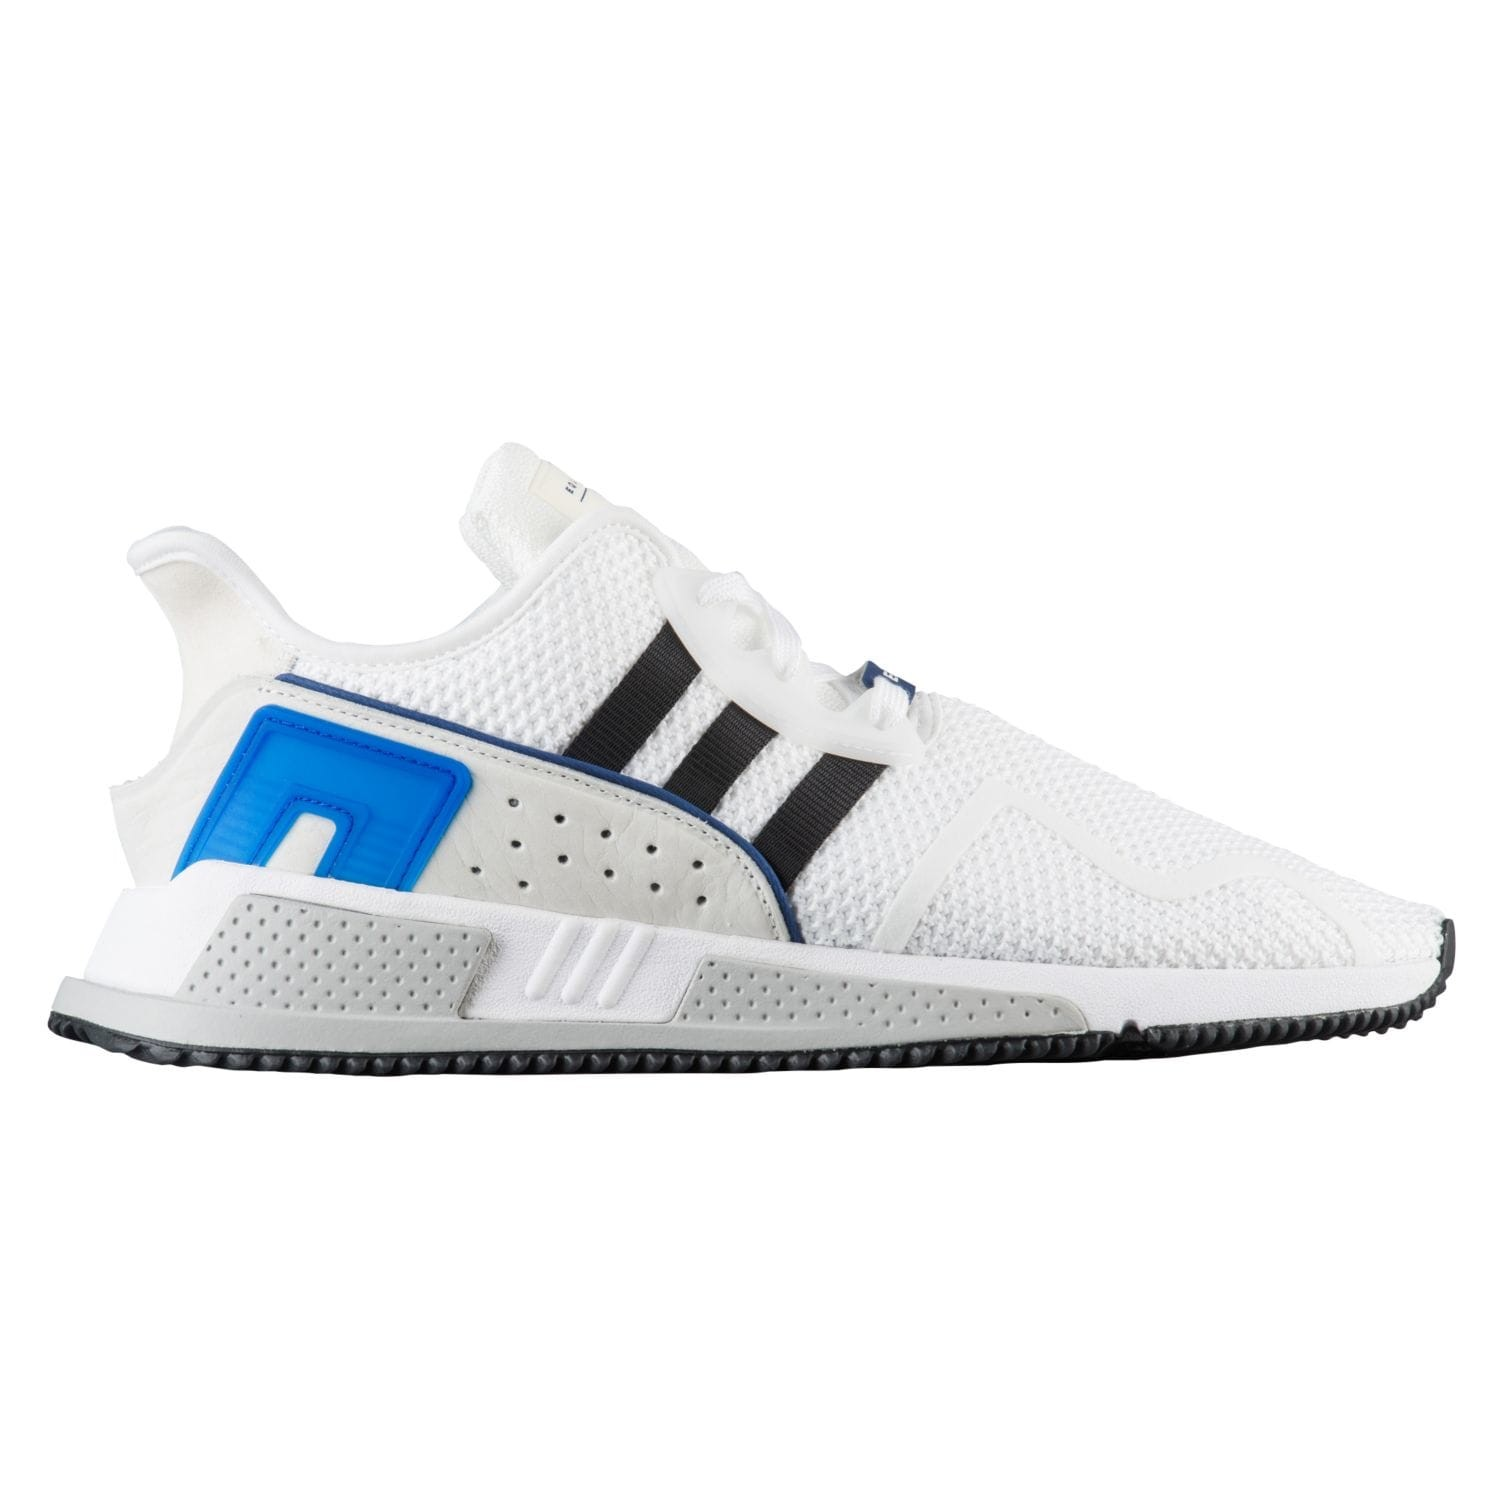 adidas Originals EQT Cushion Adv Skor CQ2379 - Herr